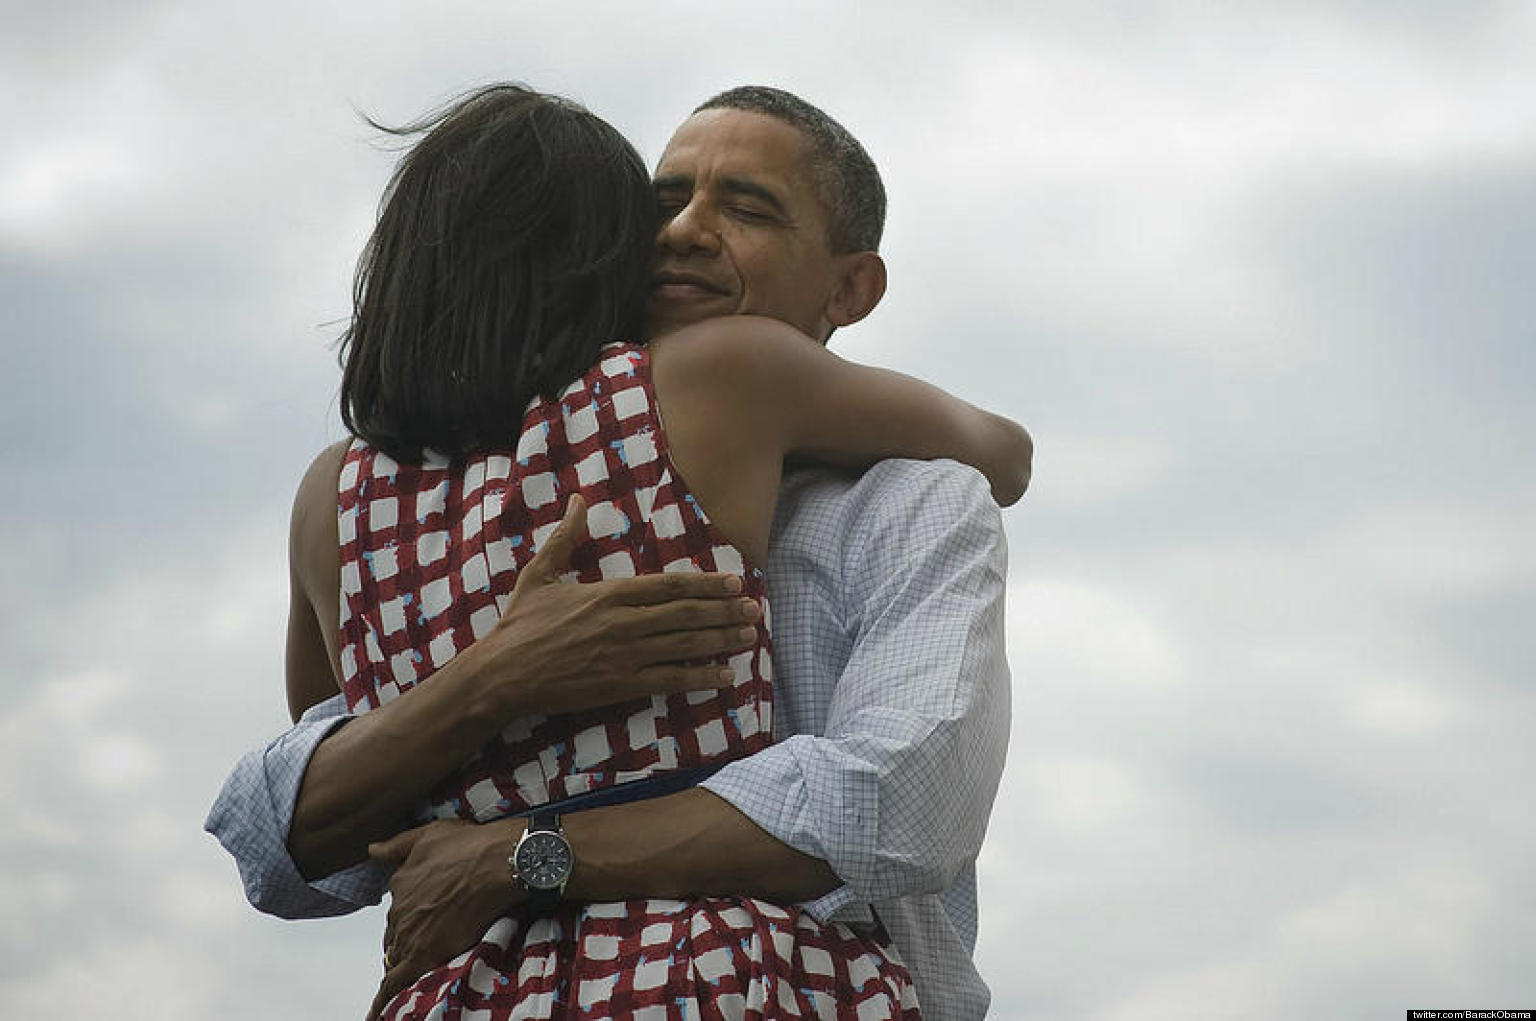 o-BARACK-MICHELLE-OBAMA-HUG-facebook